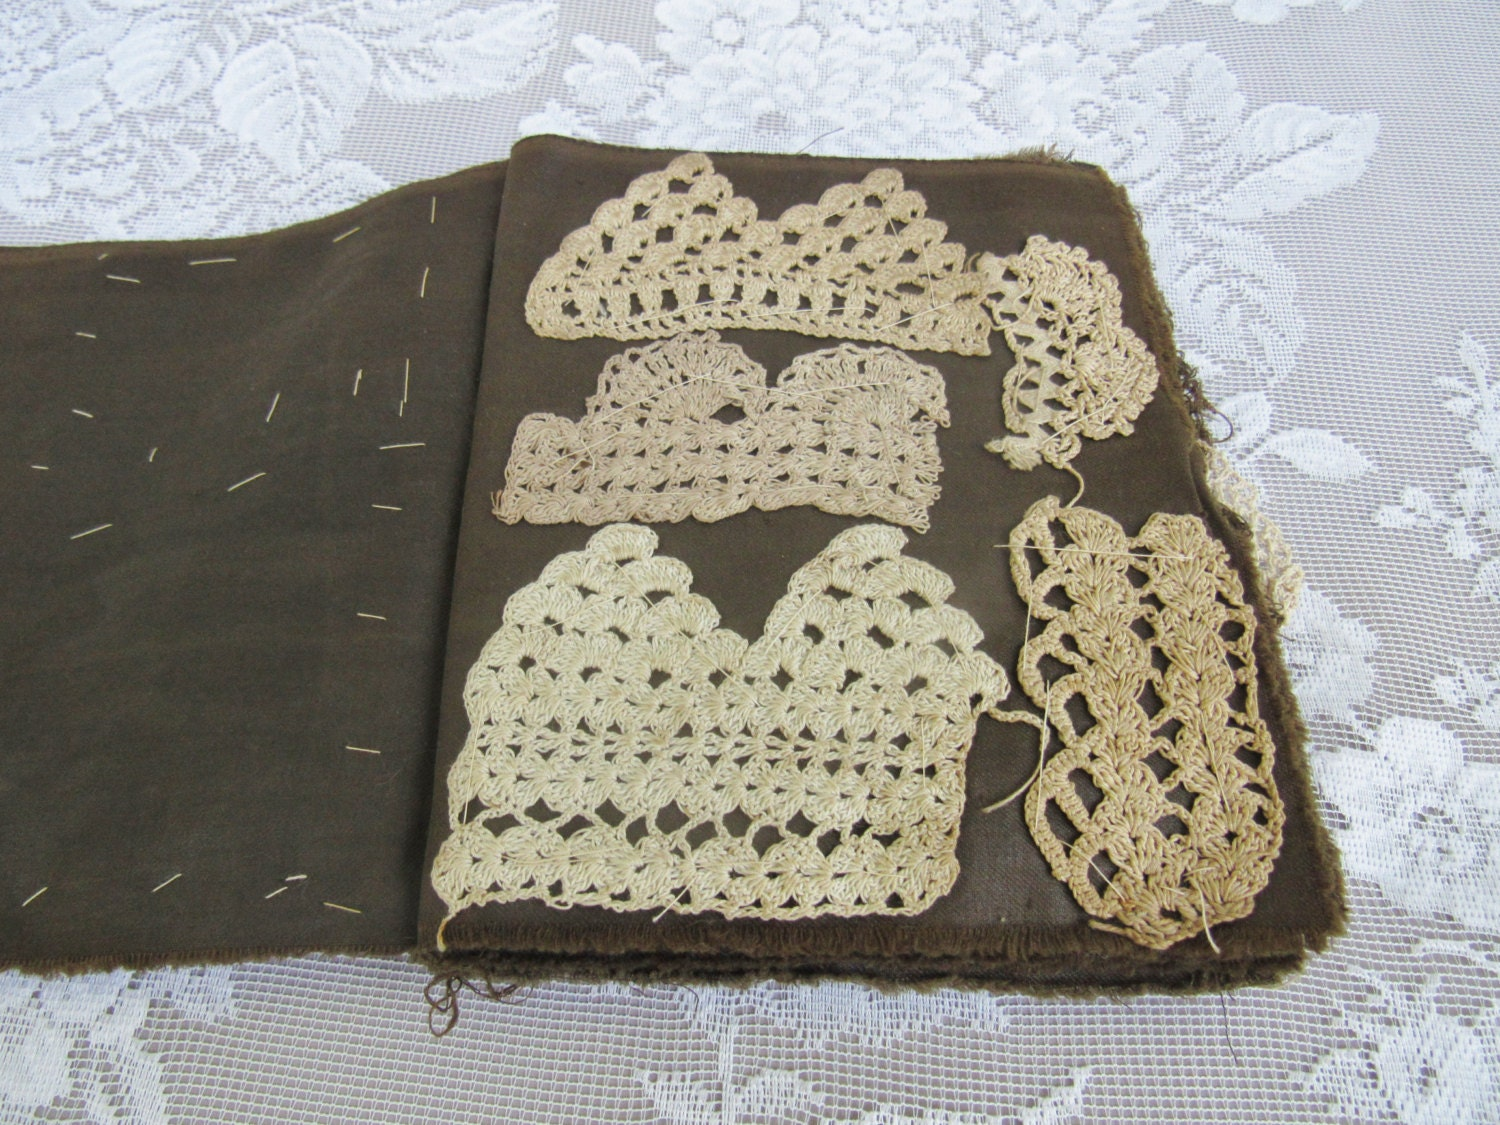 Antique Lace Sample book, Crocheted Lace pattern book, Hand stitched ...